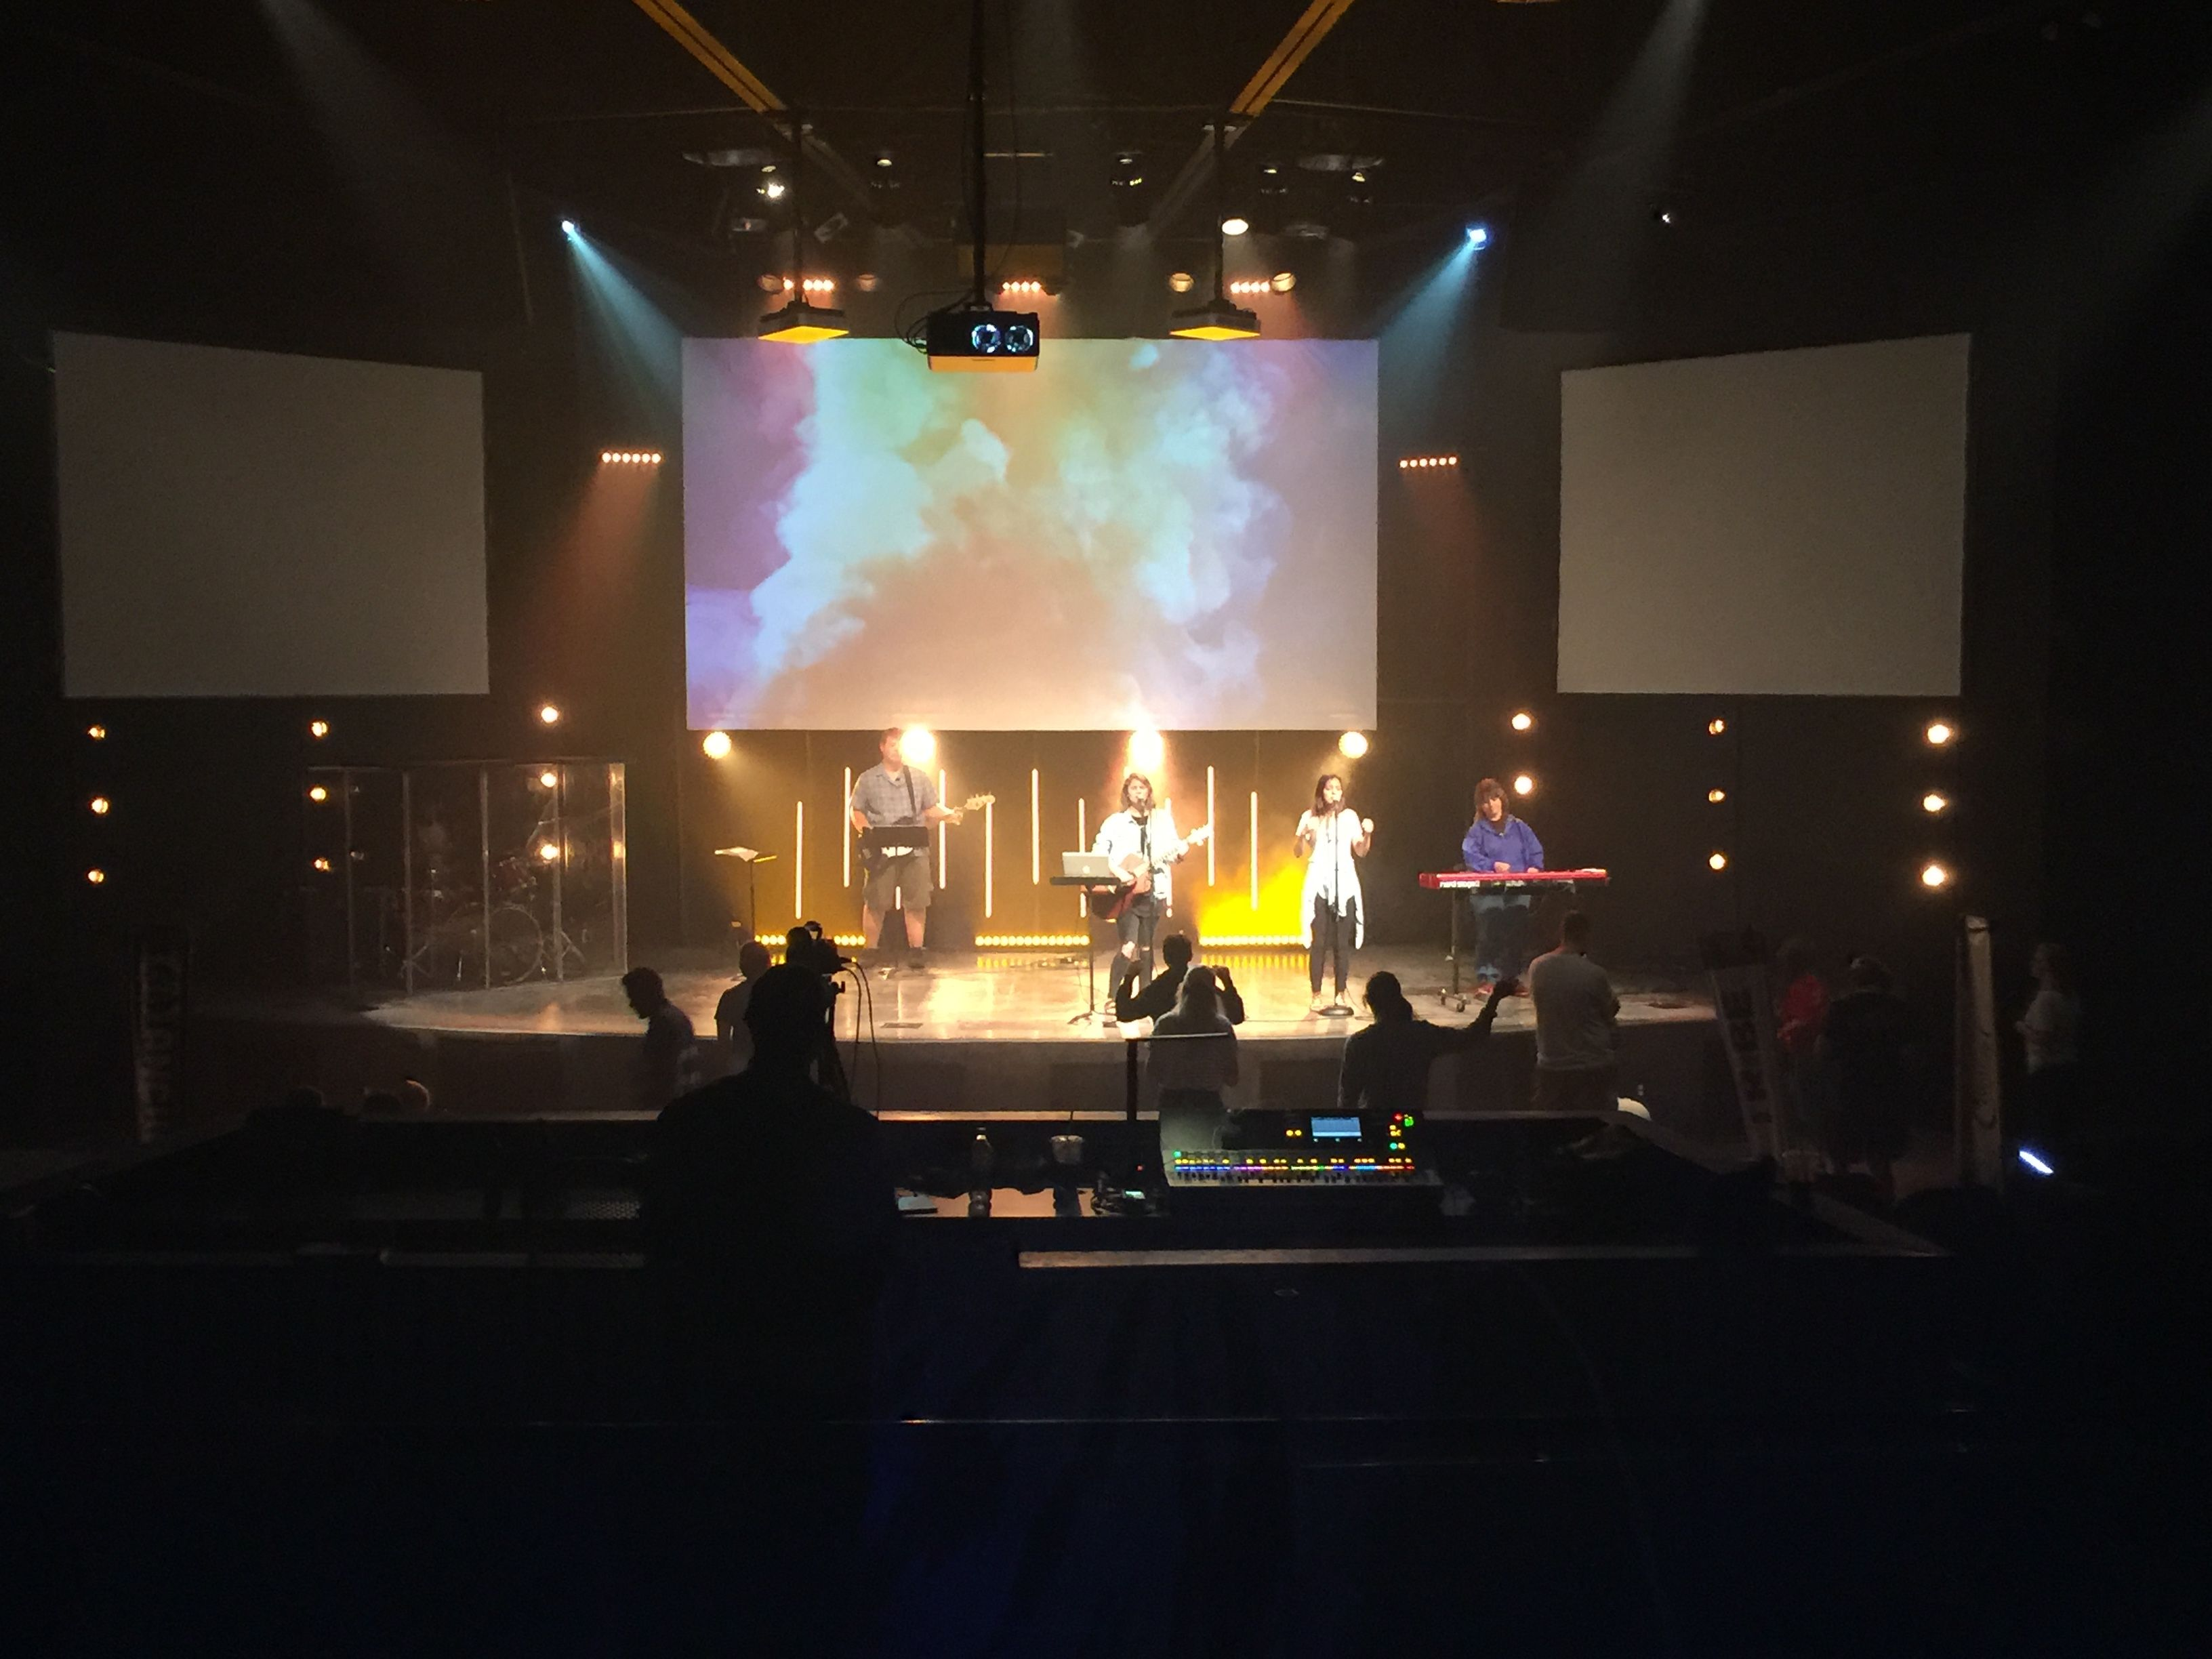 Stage Lighting For Church YTH @ Journey Church In Kenosha, WI. List: Two  Martin Scanners (above Stage Between Main And Side Screens)